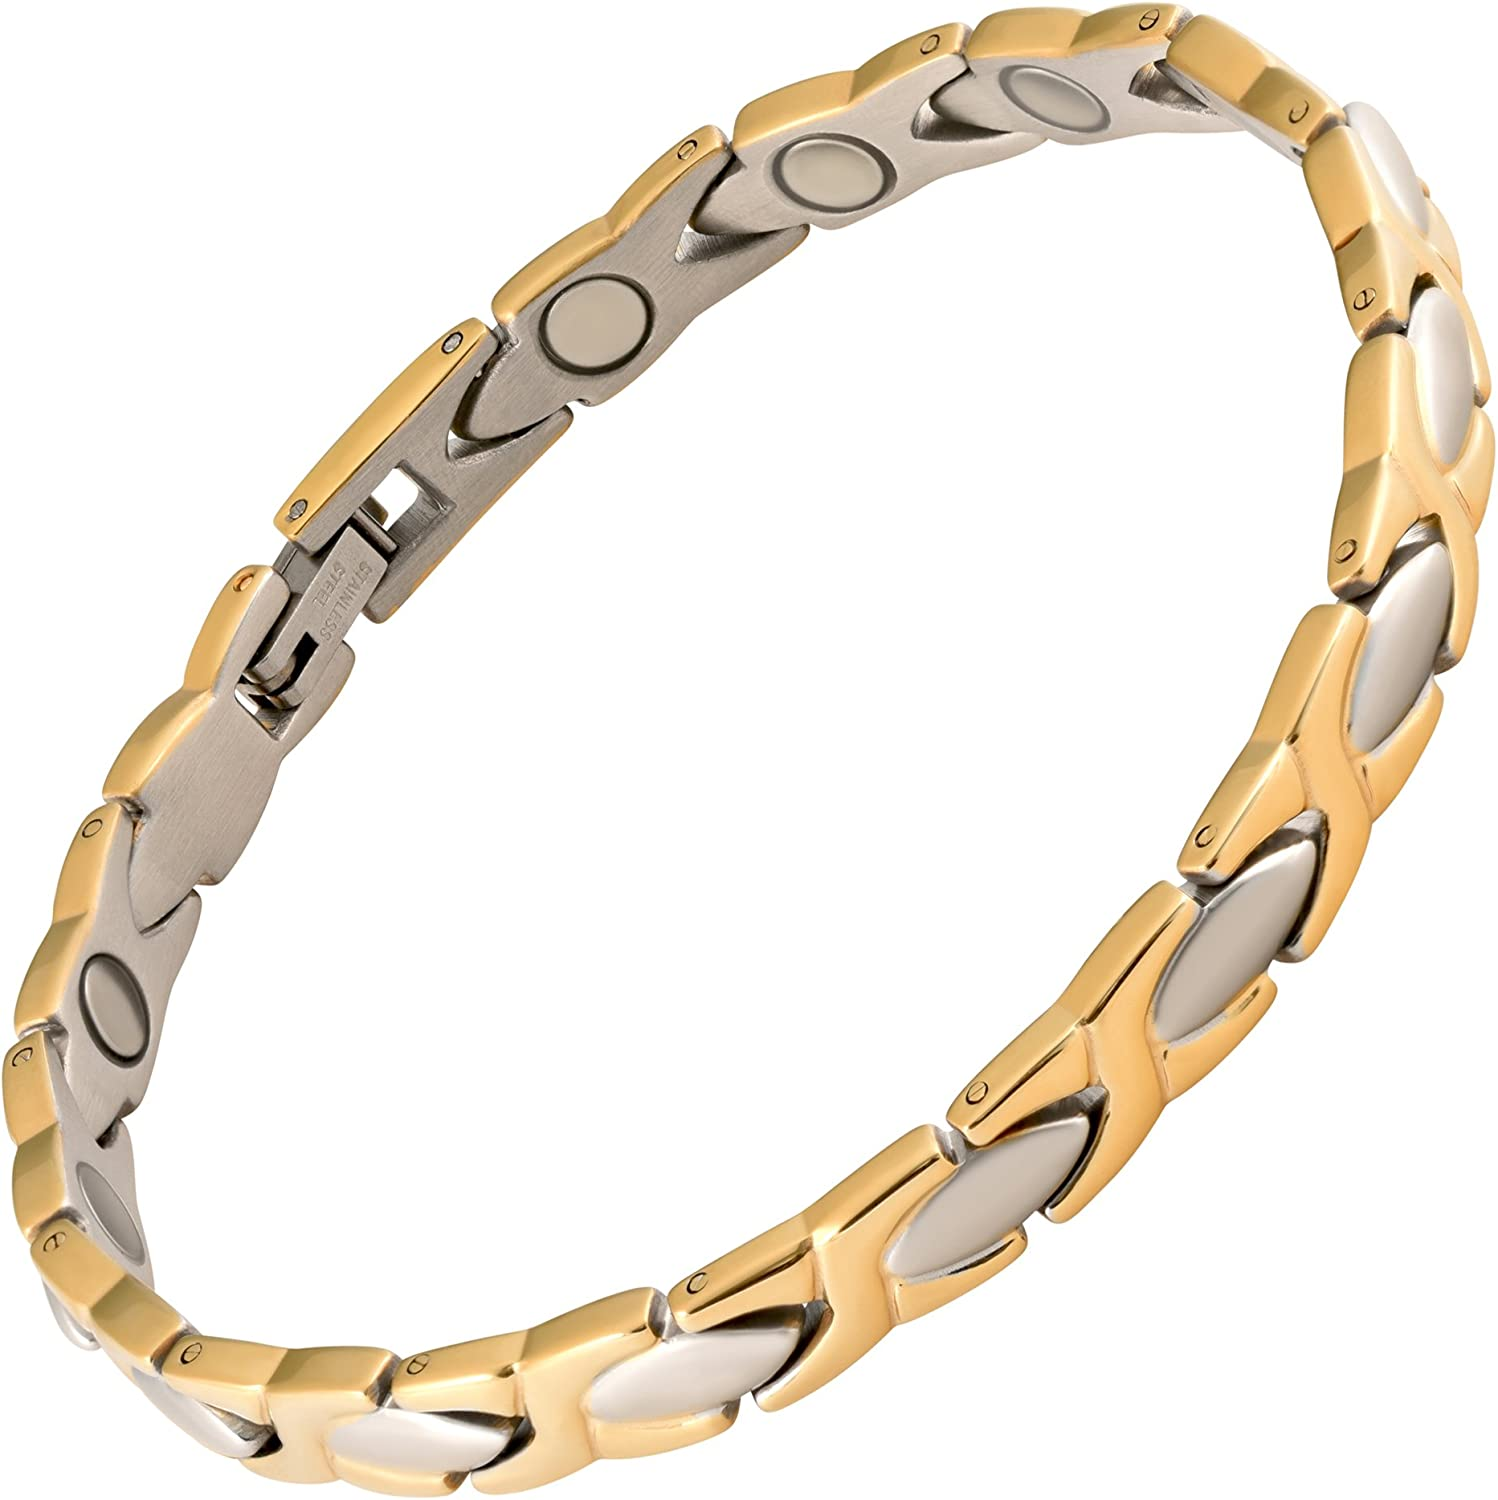 MAGNETJEWELRYSTORE Magnetic Therapy Bracelet Stainless Steel 2 Tone XOXO: Health & Personal Care